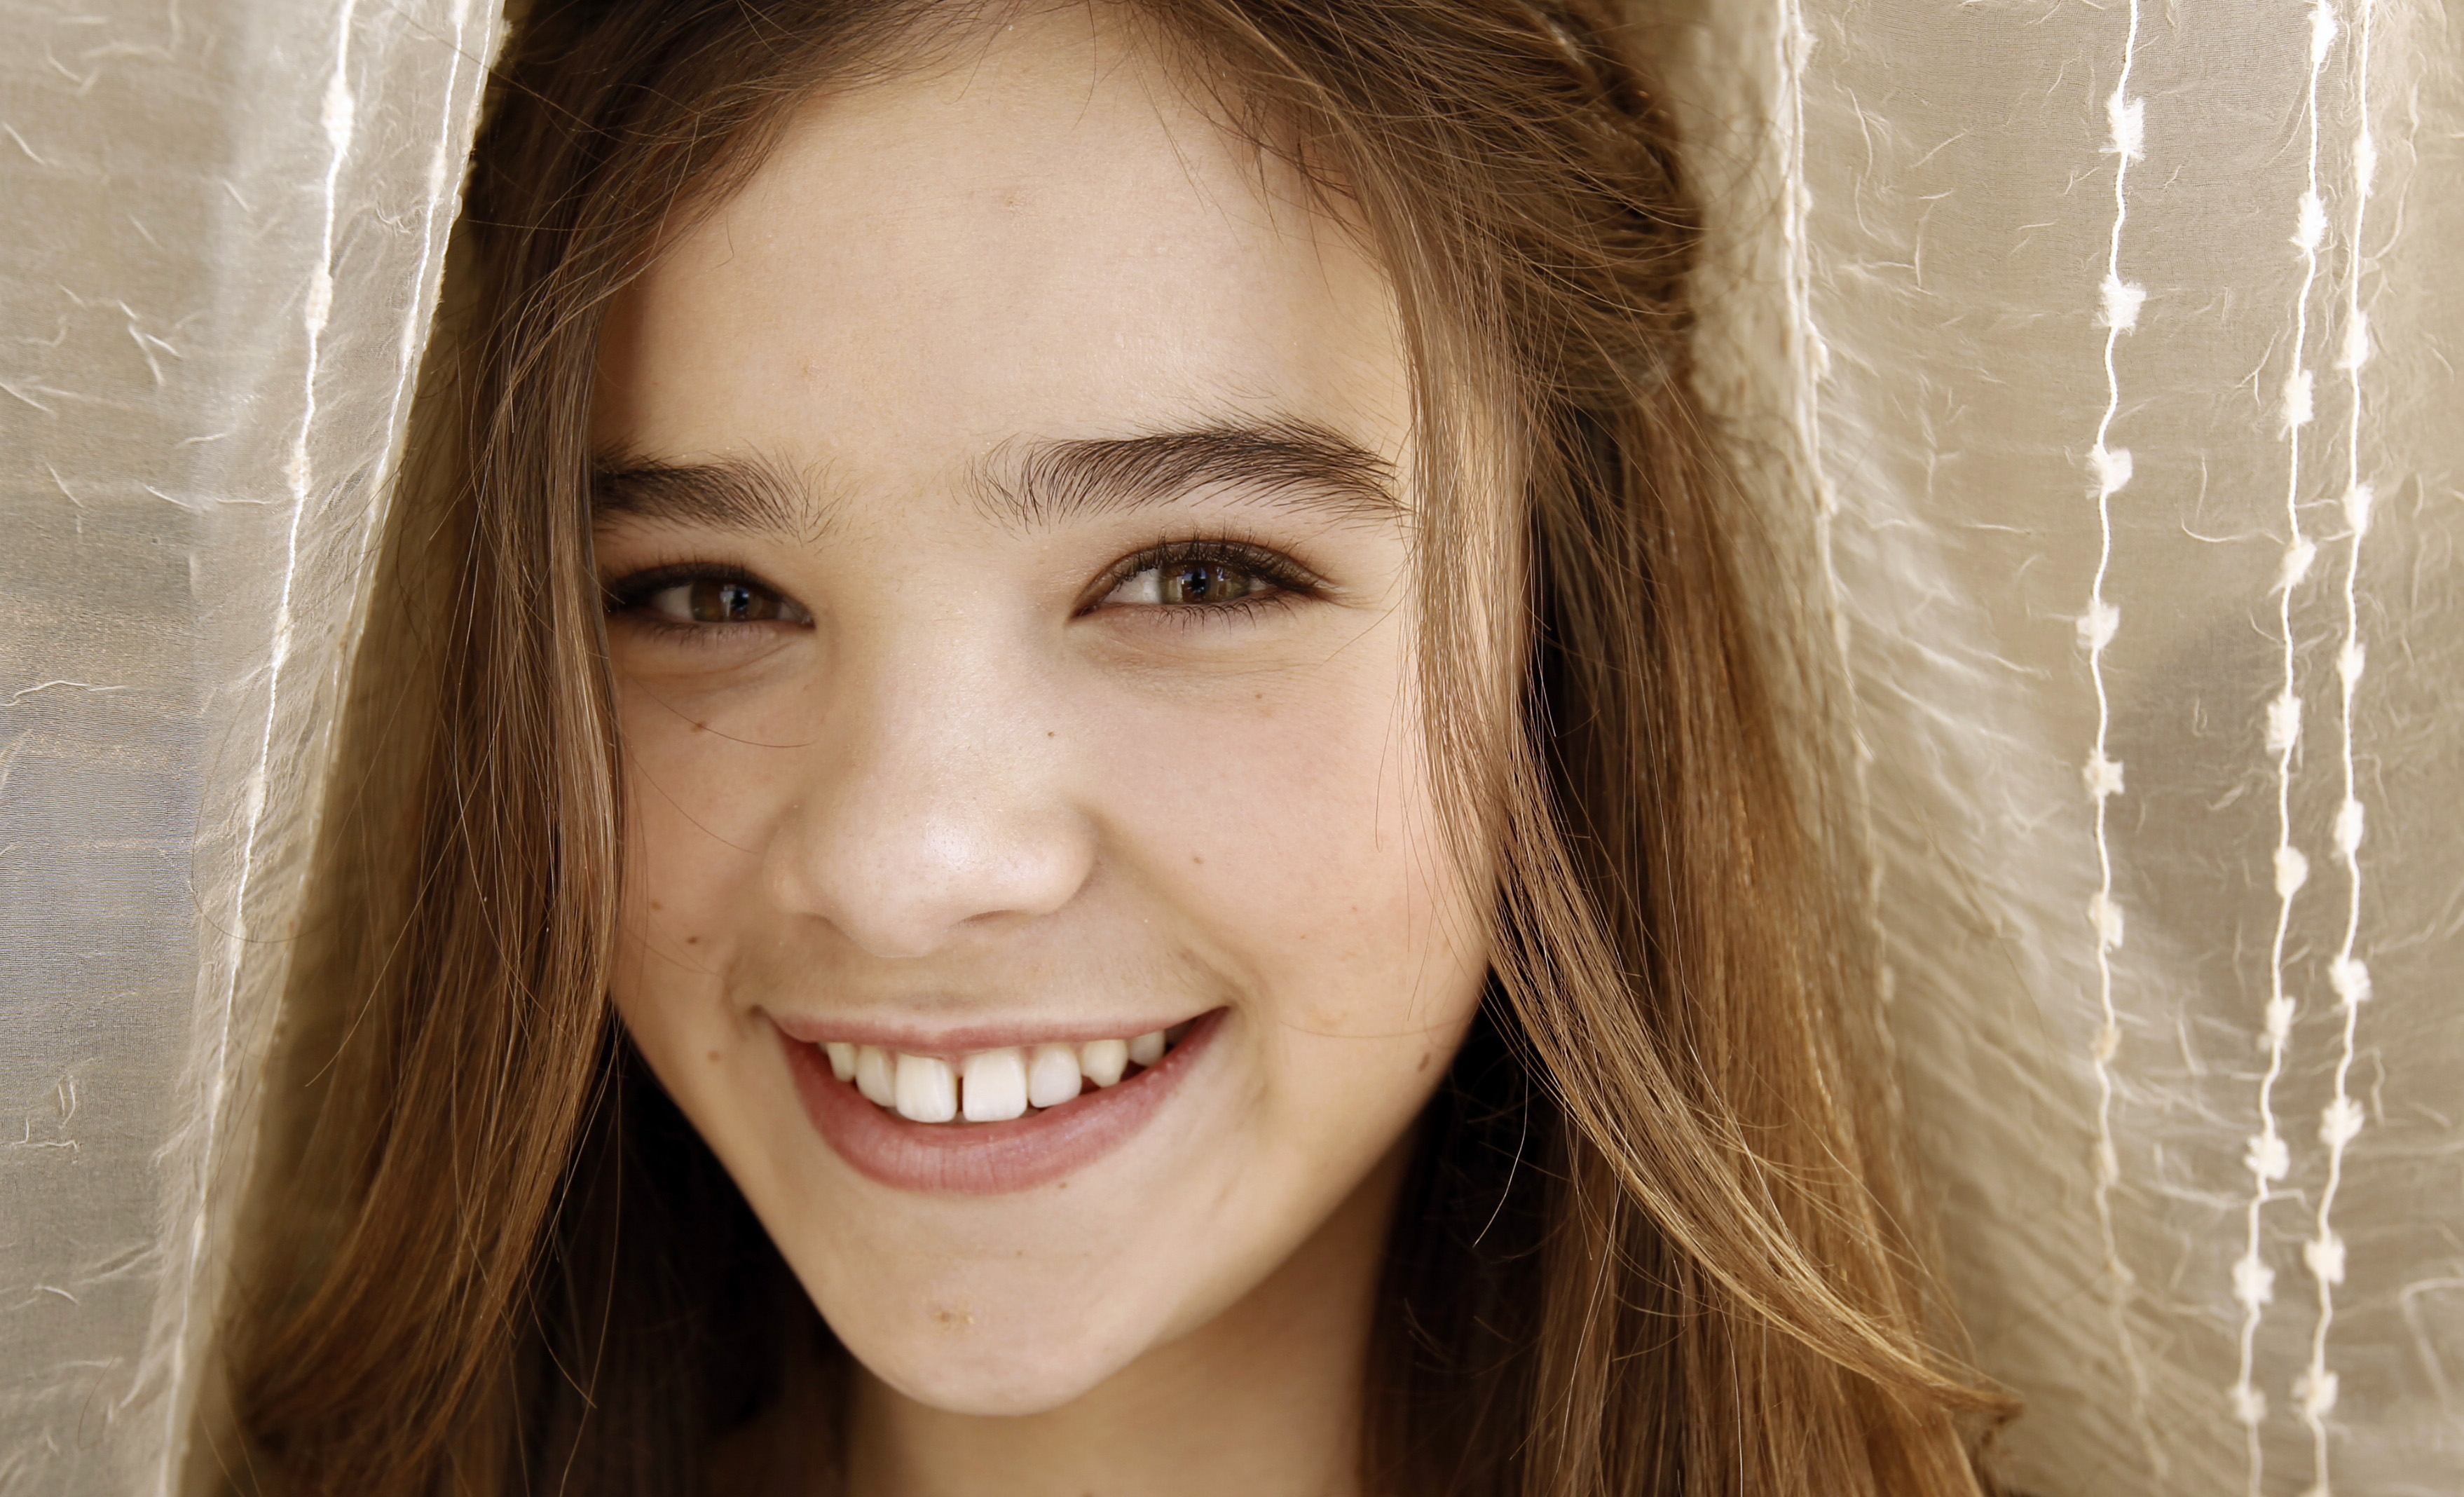 hailee steinfeld face smile wallpaper background 189